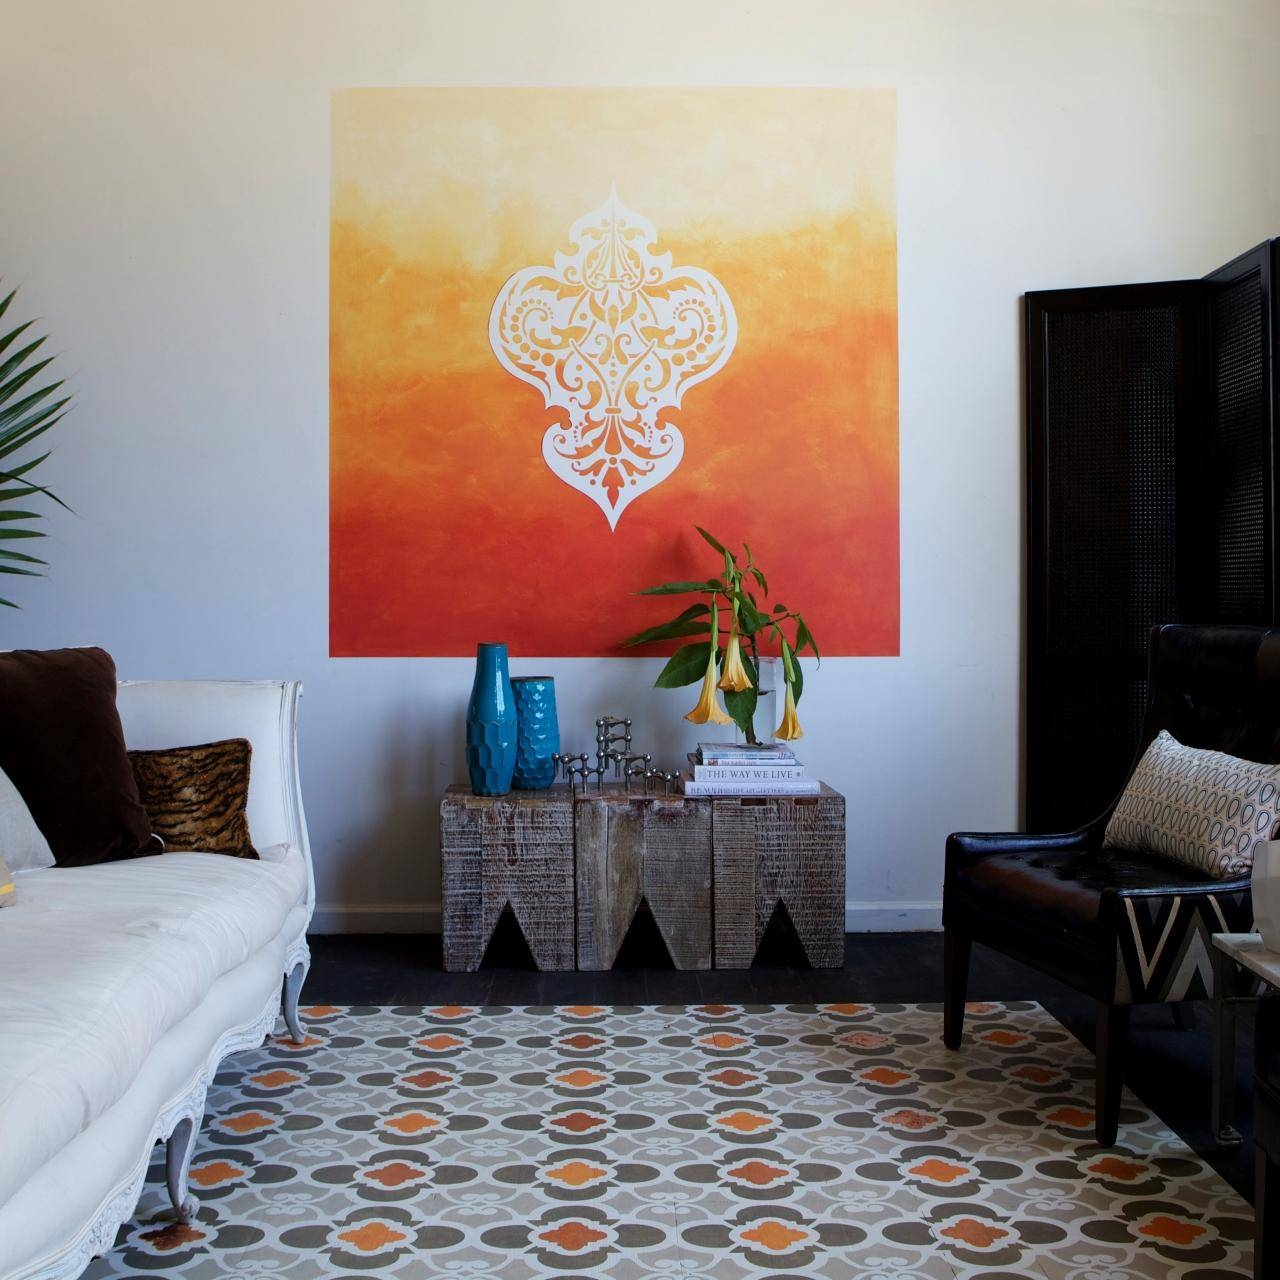 Learn How To Paint A Stenciled Ombre Wall Mural | How Tos | Diy Regarding Current Space Stencils For Walls (View 14 of 20)